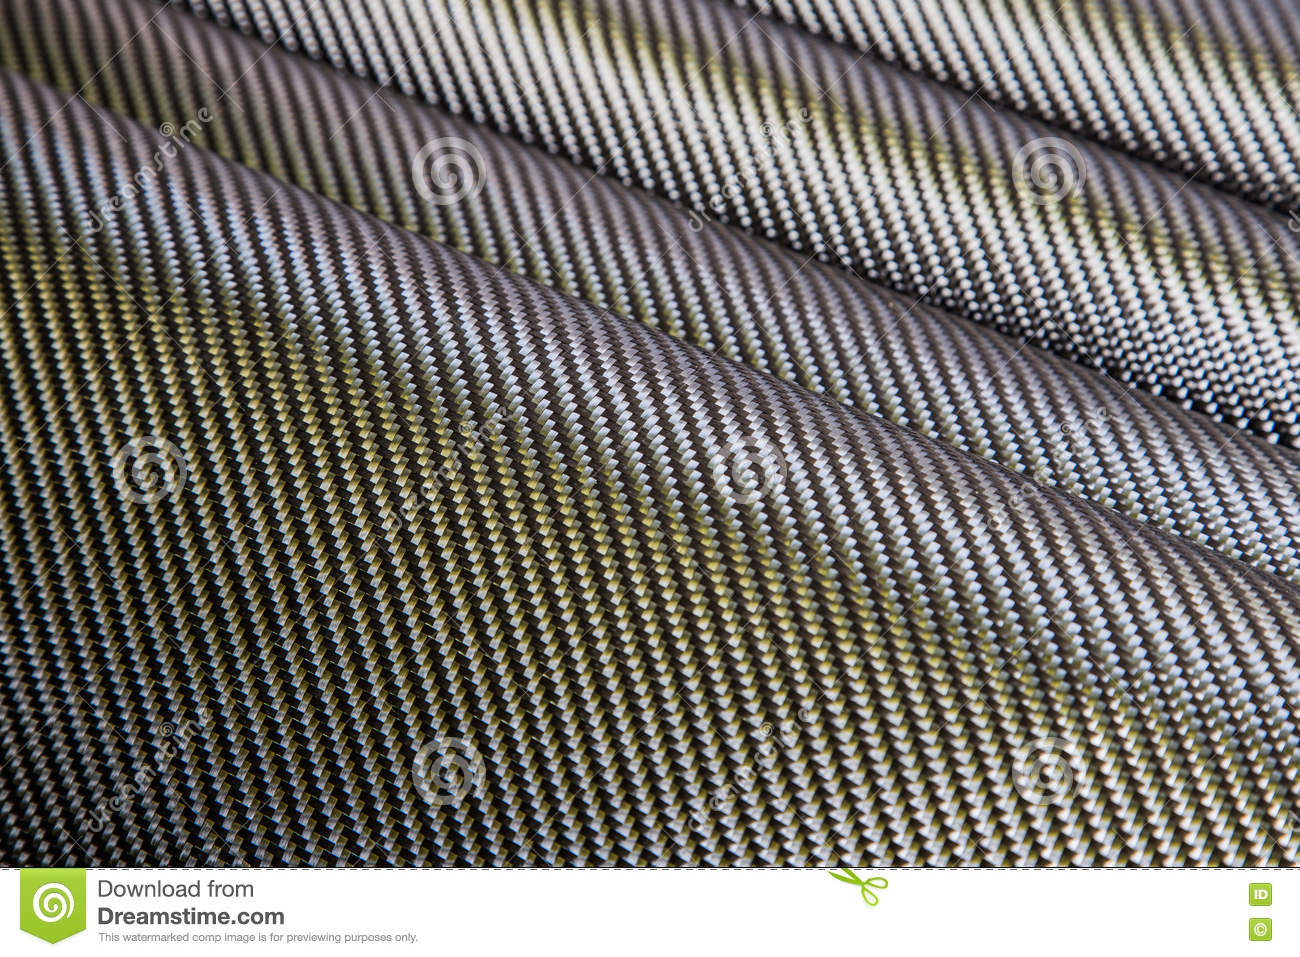 Carbon fiber texture stock photo  Image of fabric, force